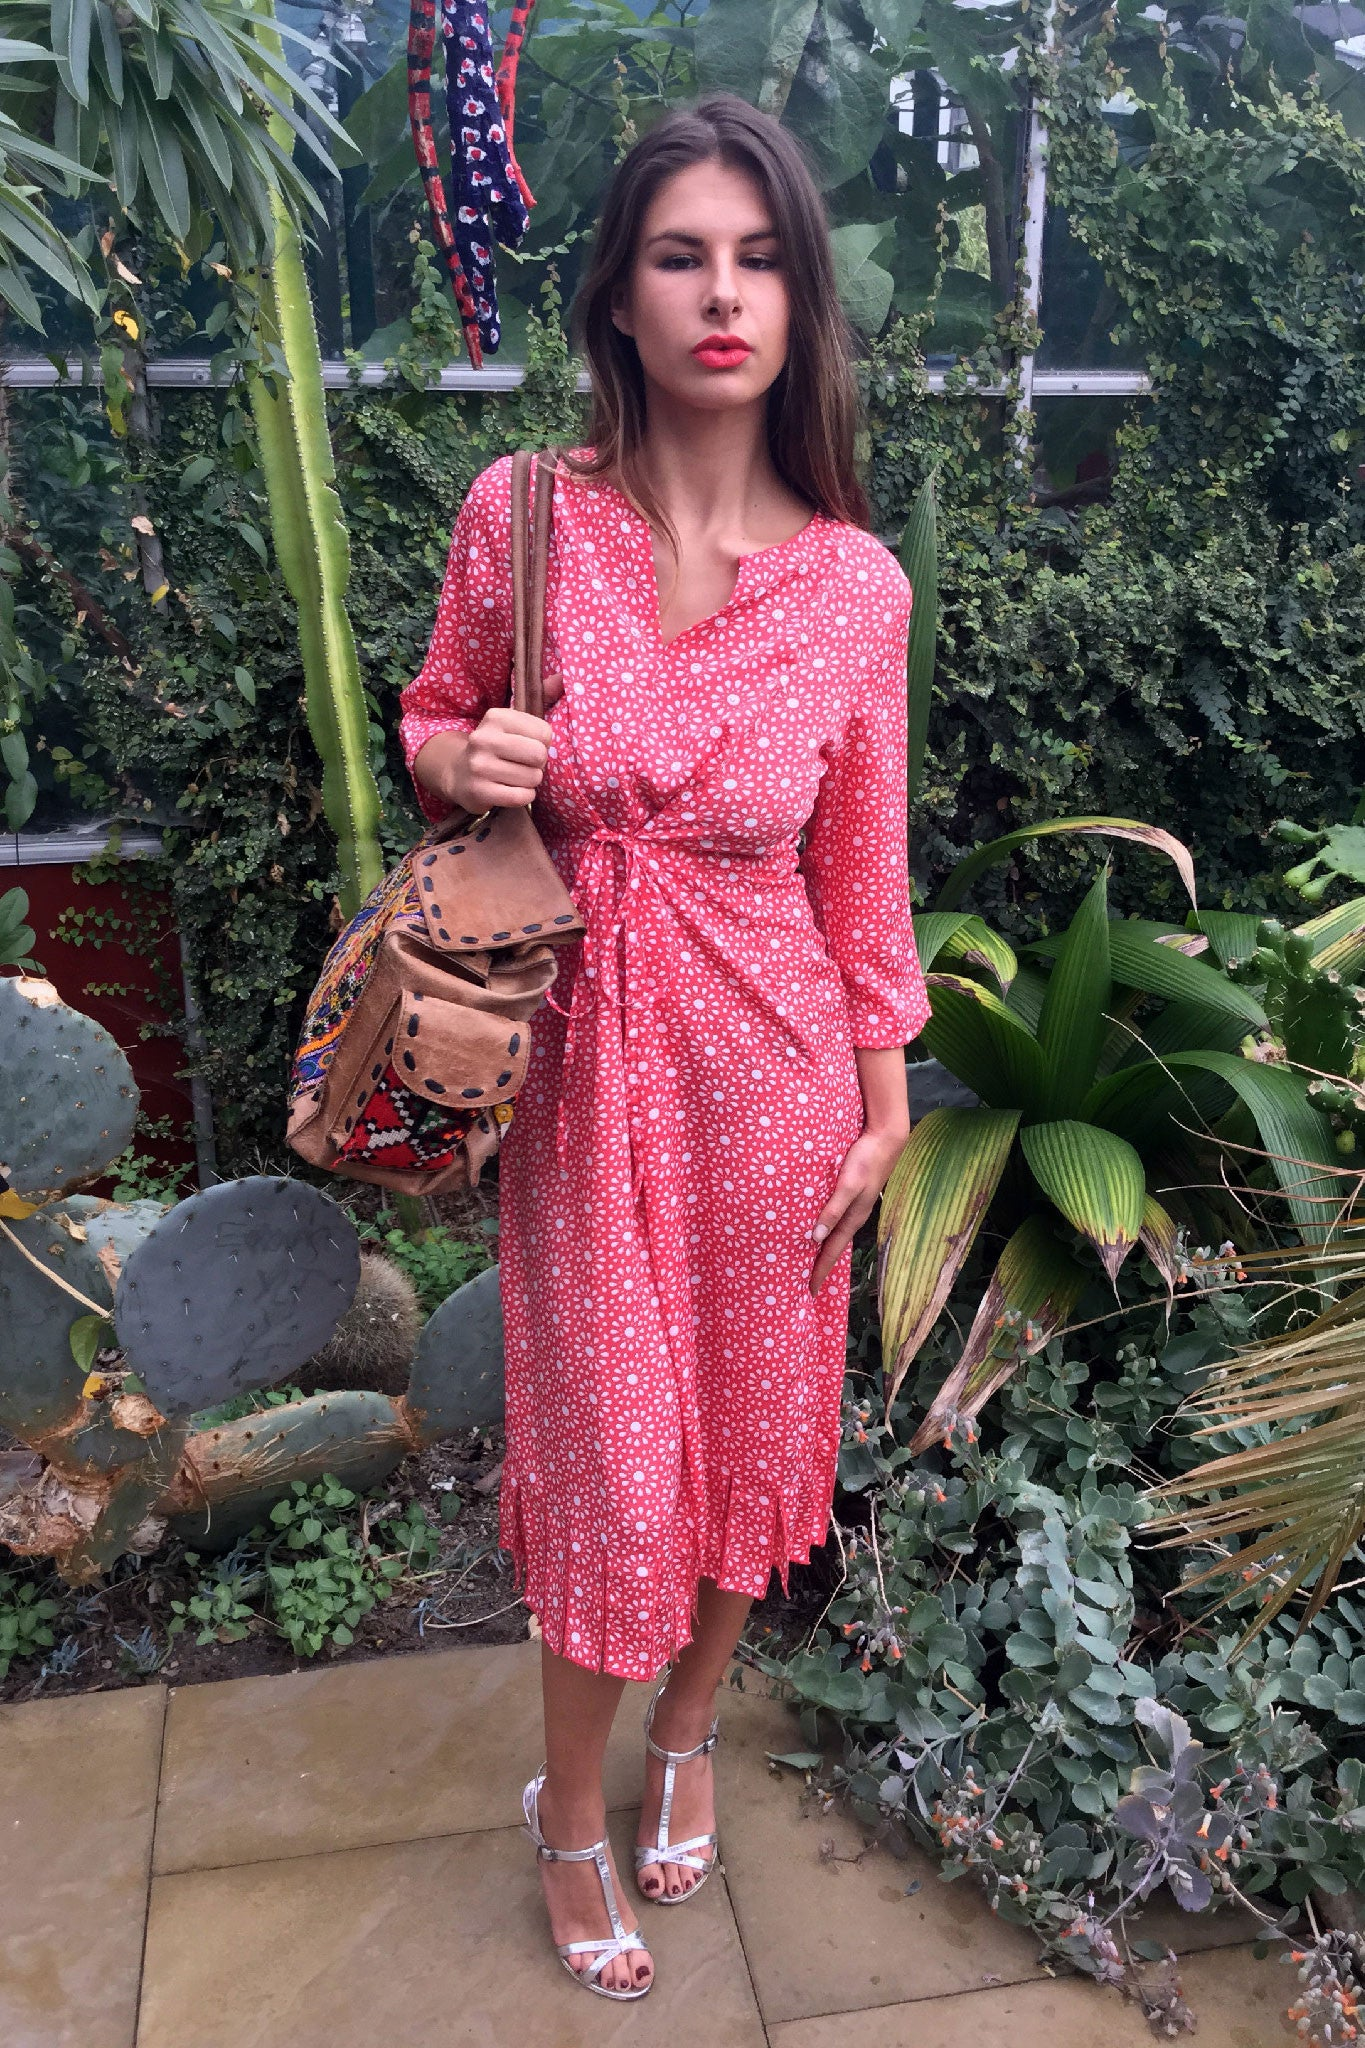 Sketch London Red Coral Print Midi Length Printed Summer Dress with Sleeves Flutter Fringe Streamer Hem Ethical Sustainable